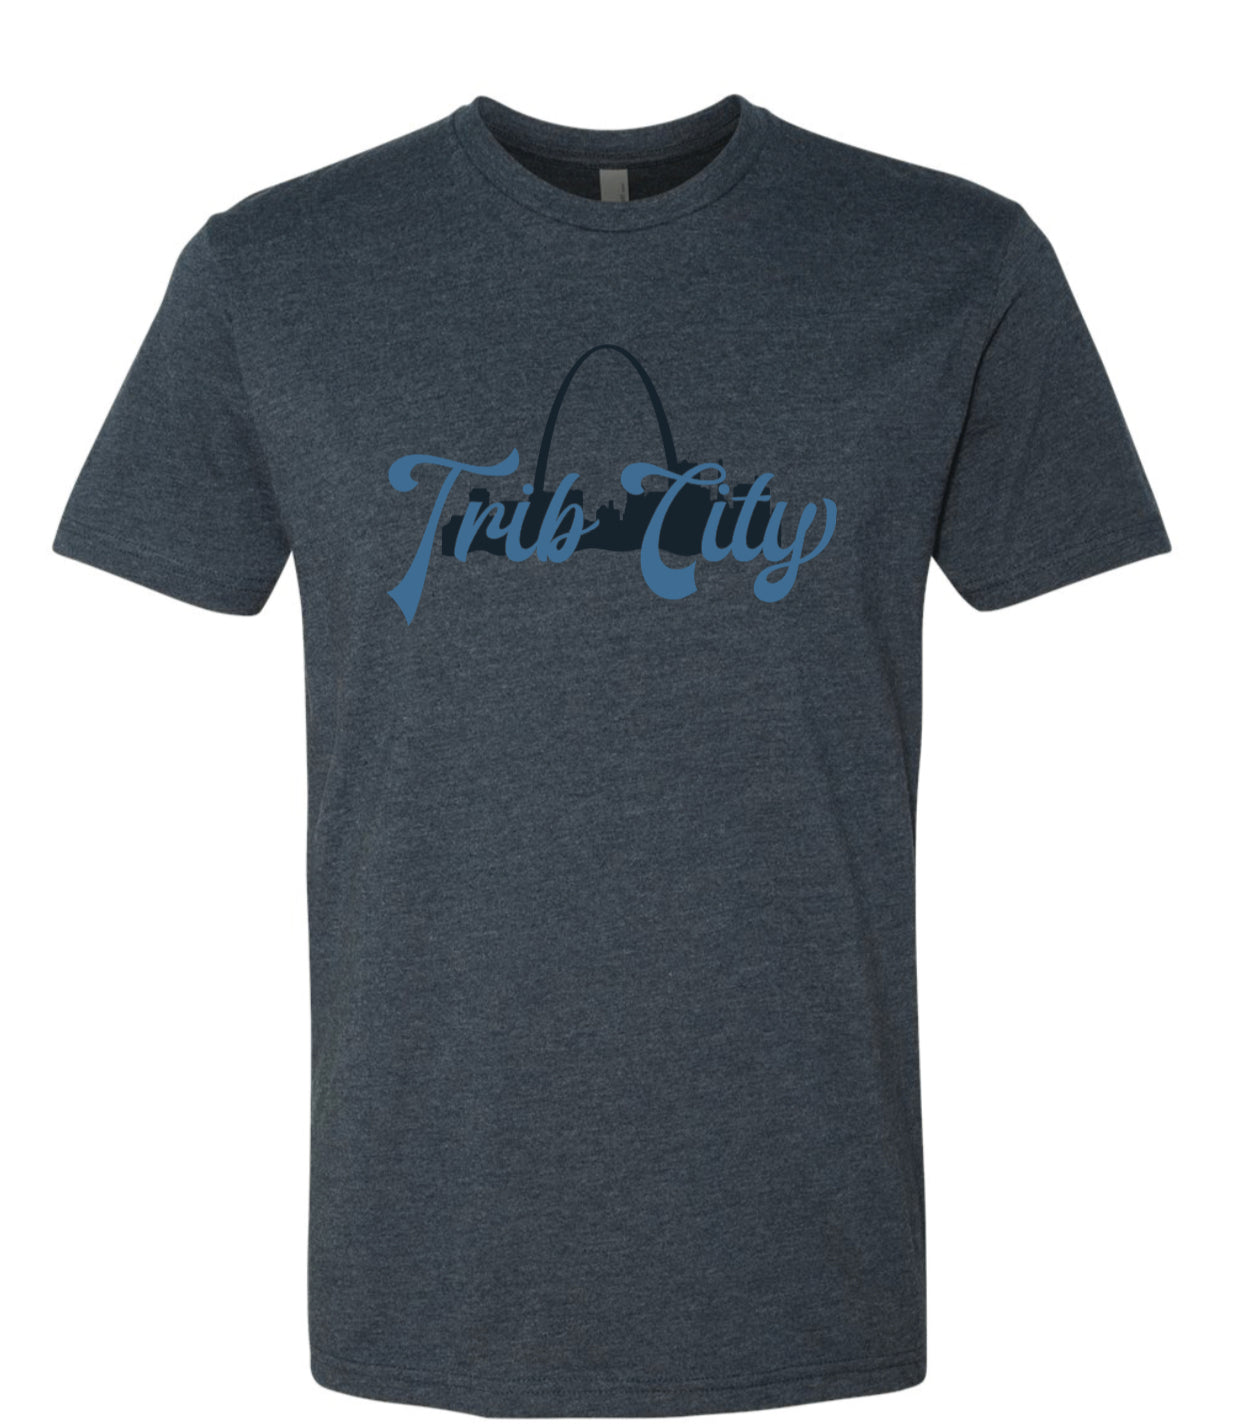 Sold Out: Trib City - Navy